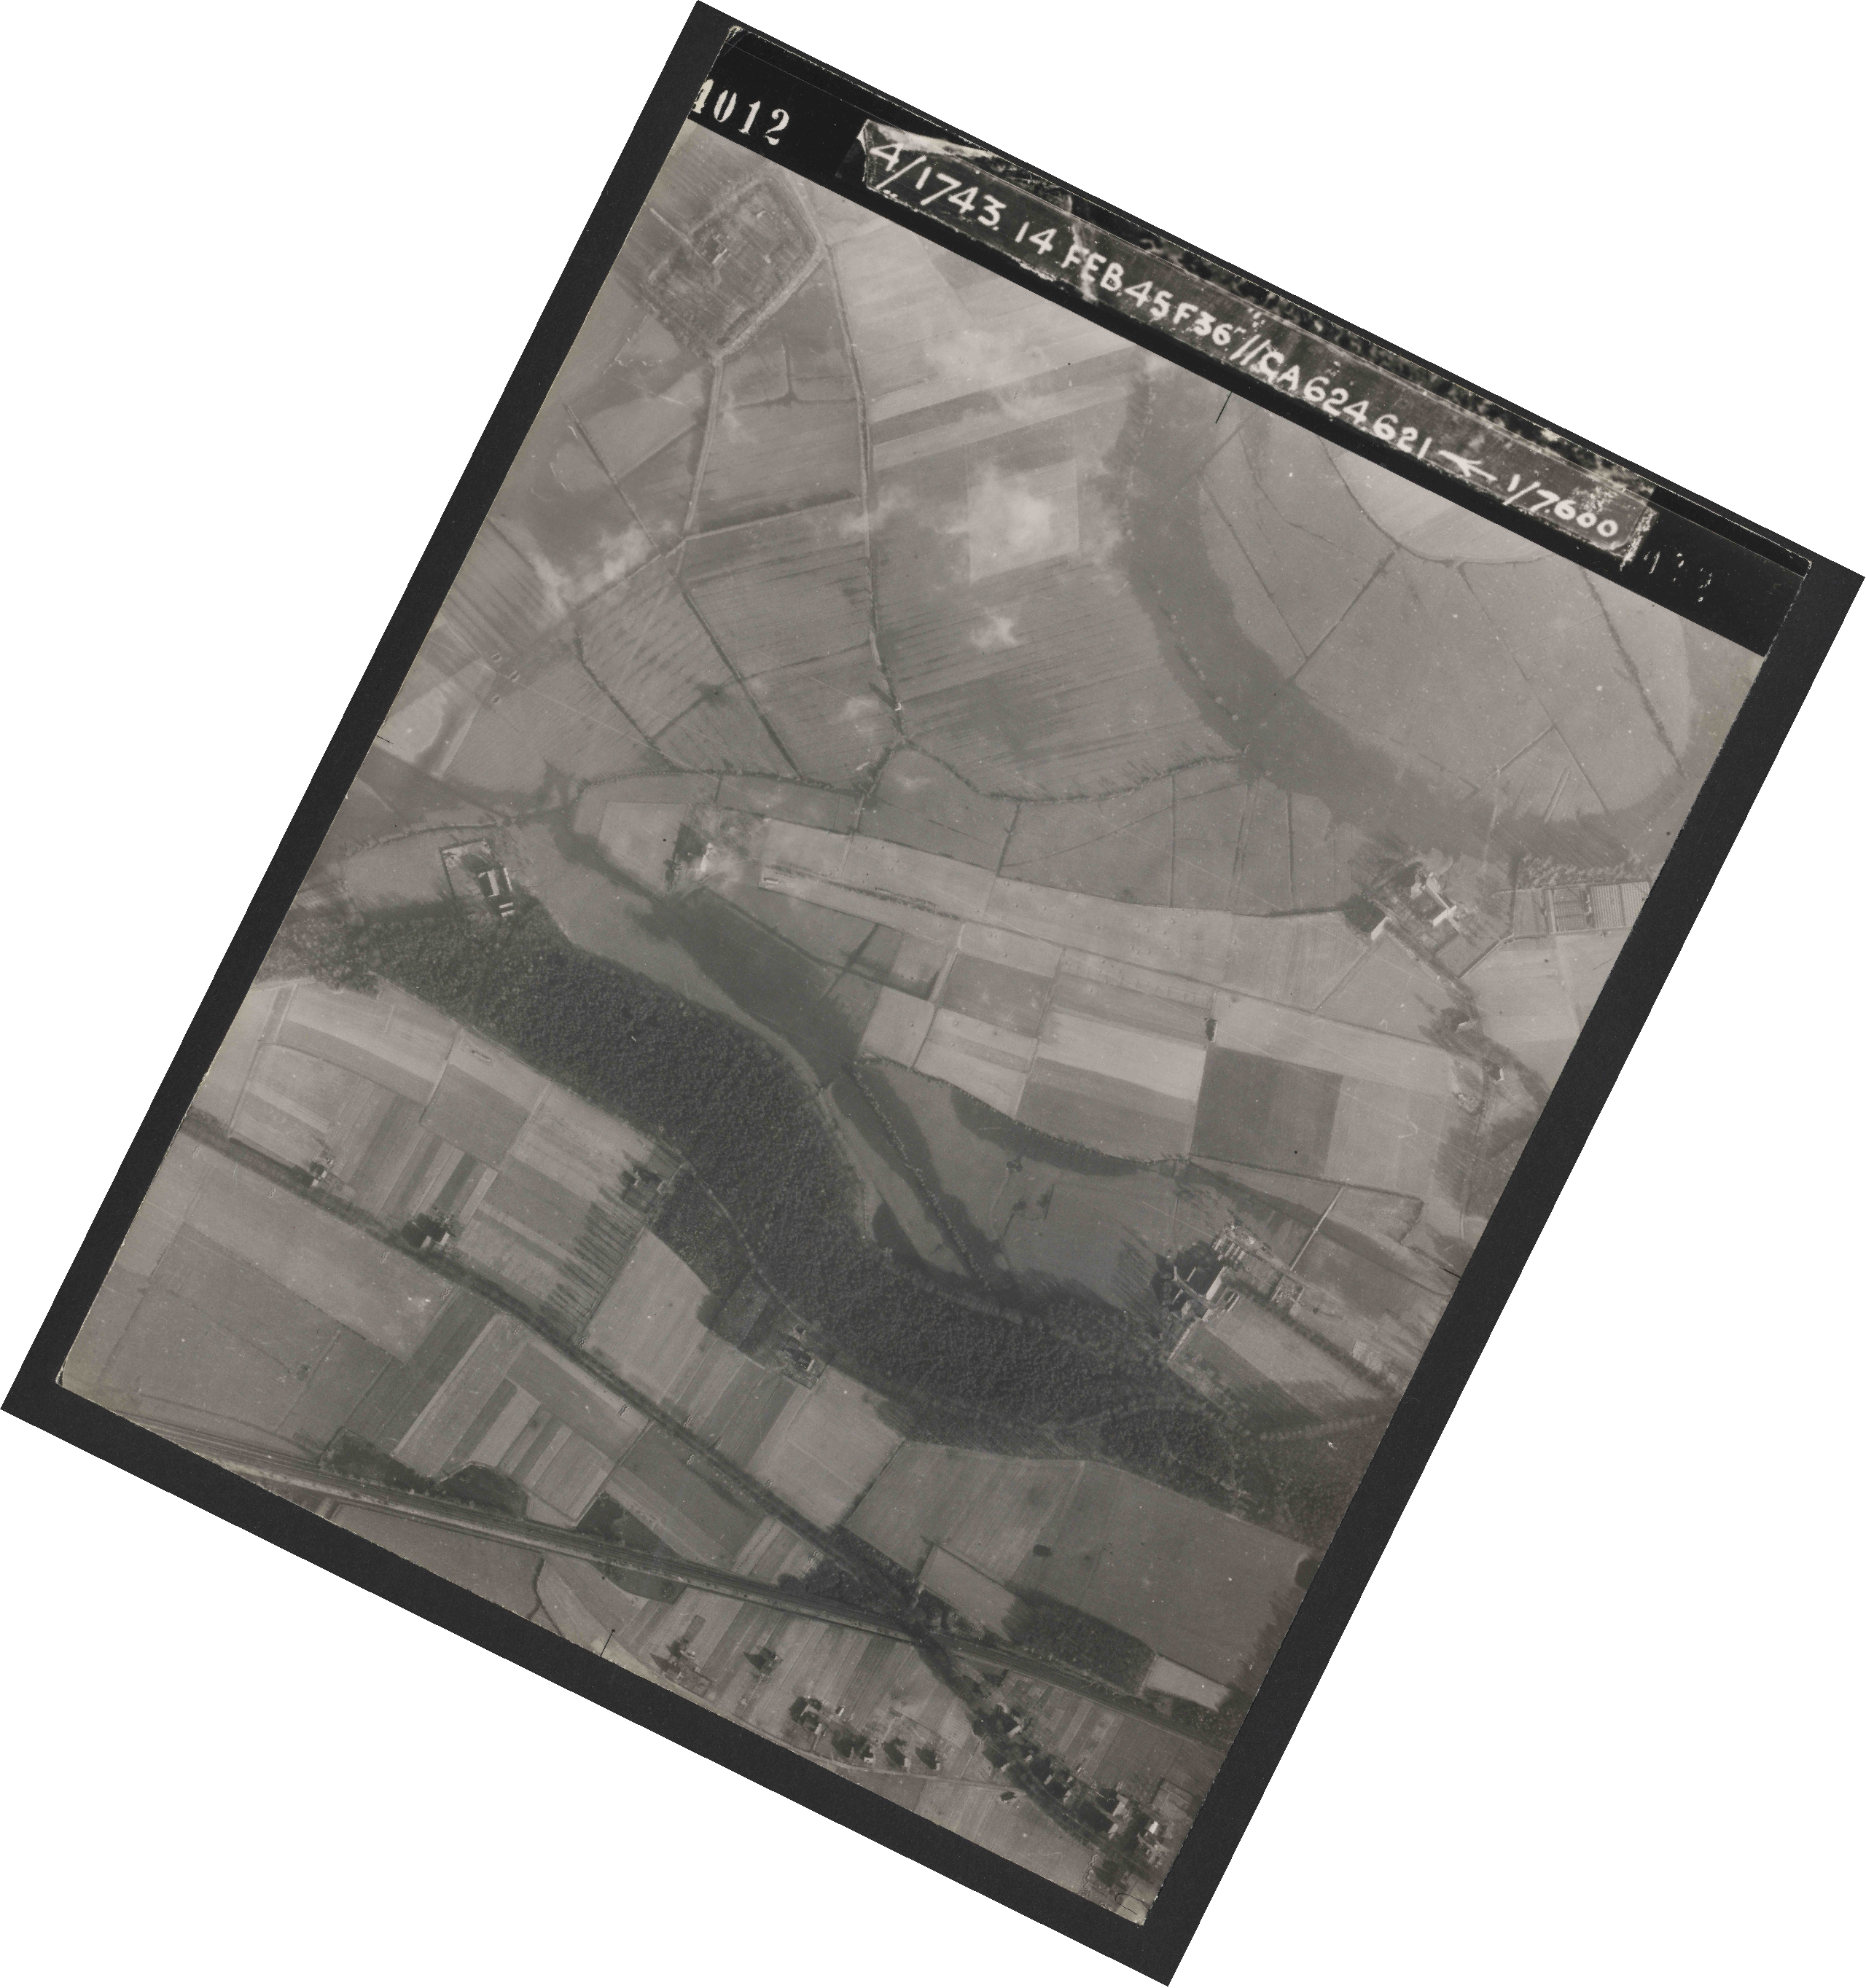 Collection RAF aerial photos 1940-1945 - flight 323, run 02, photo 4012